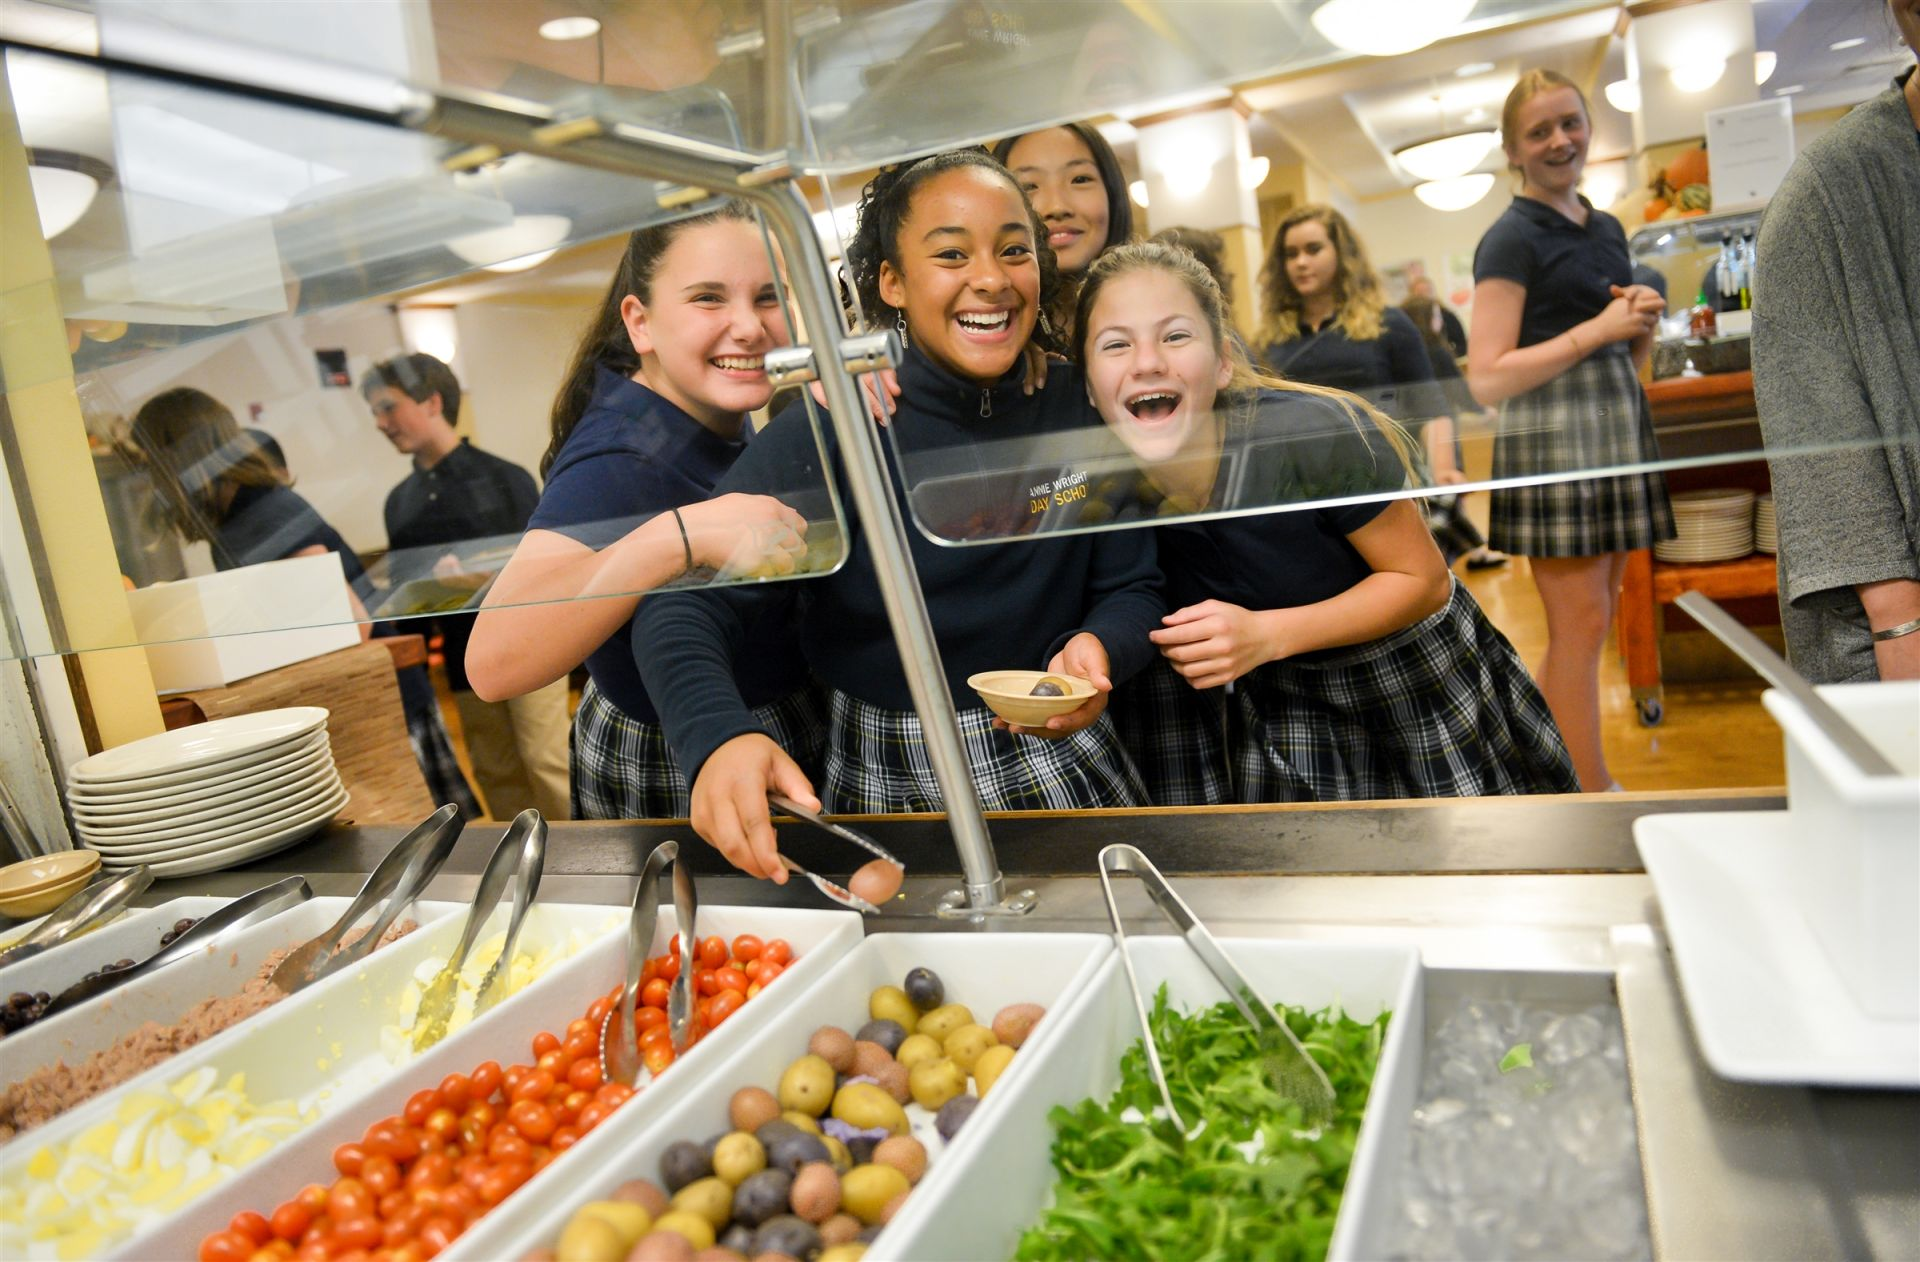 Students of all ages enjoy the free salad bar.